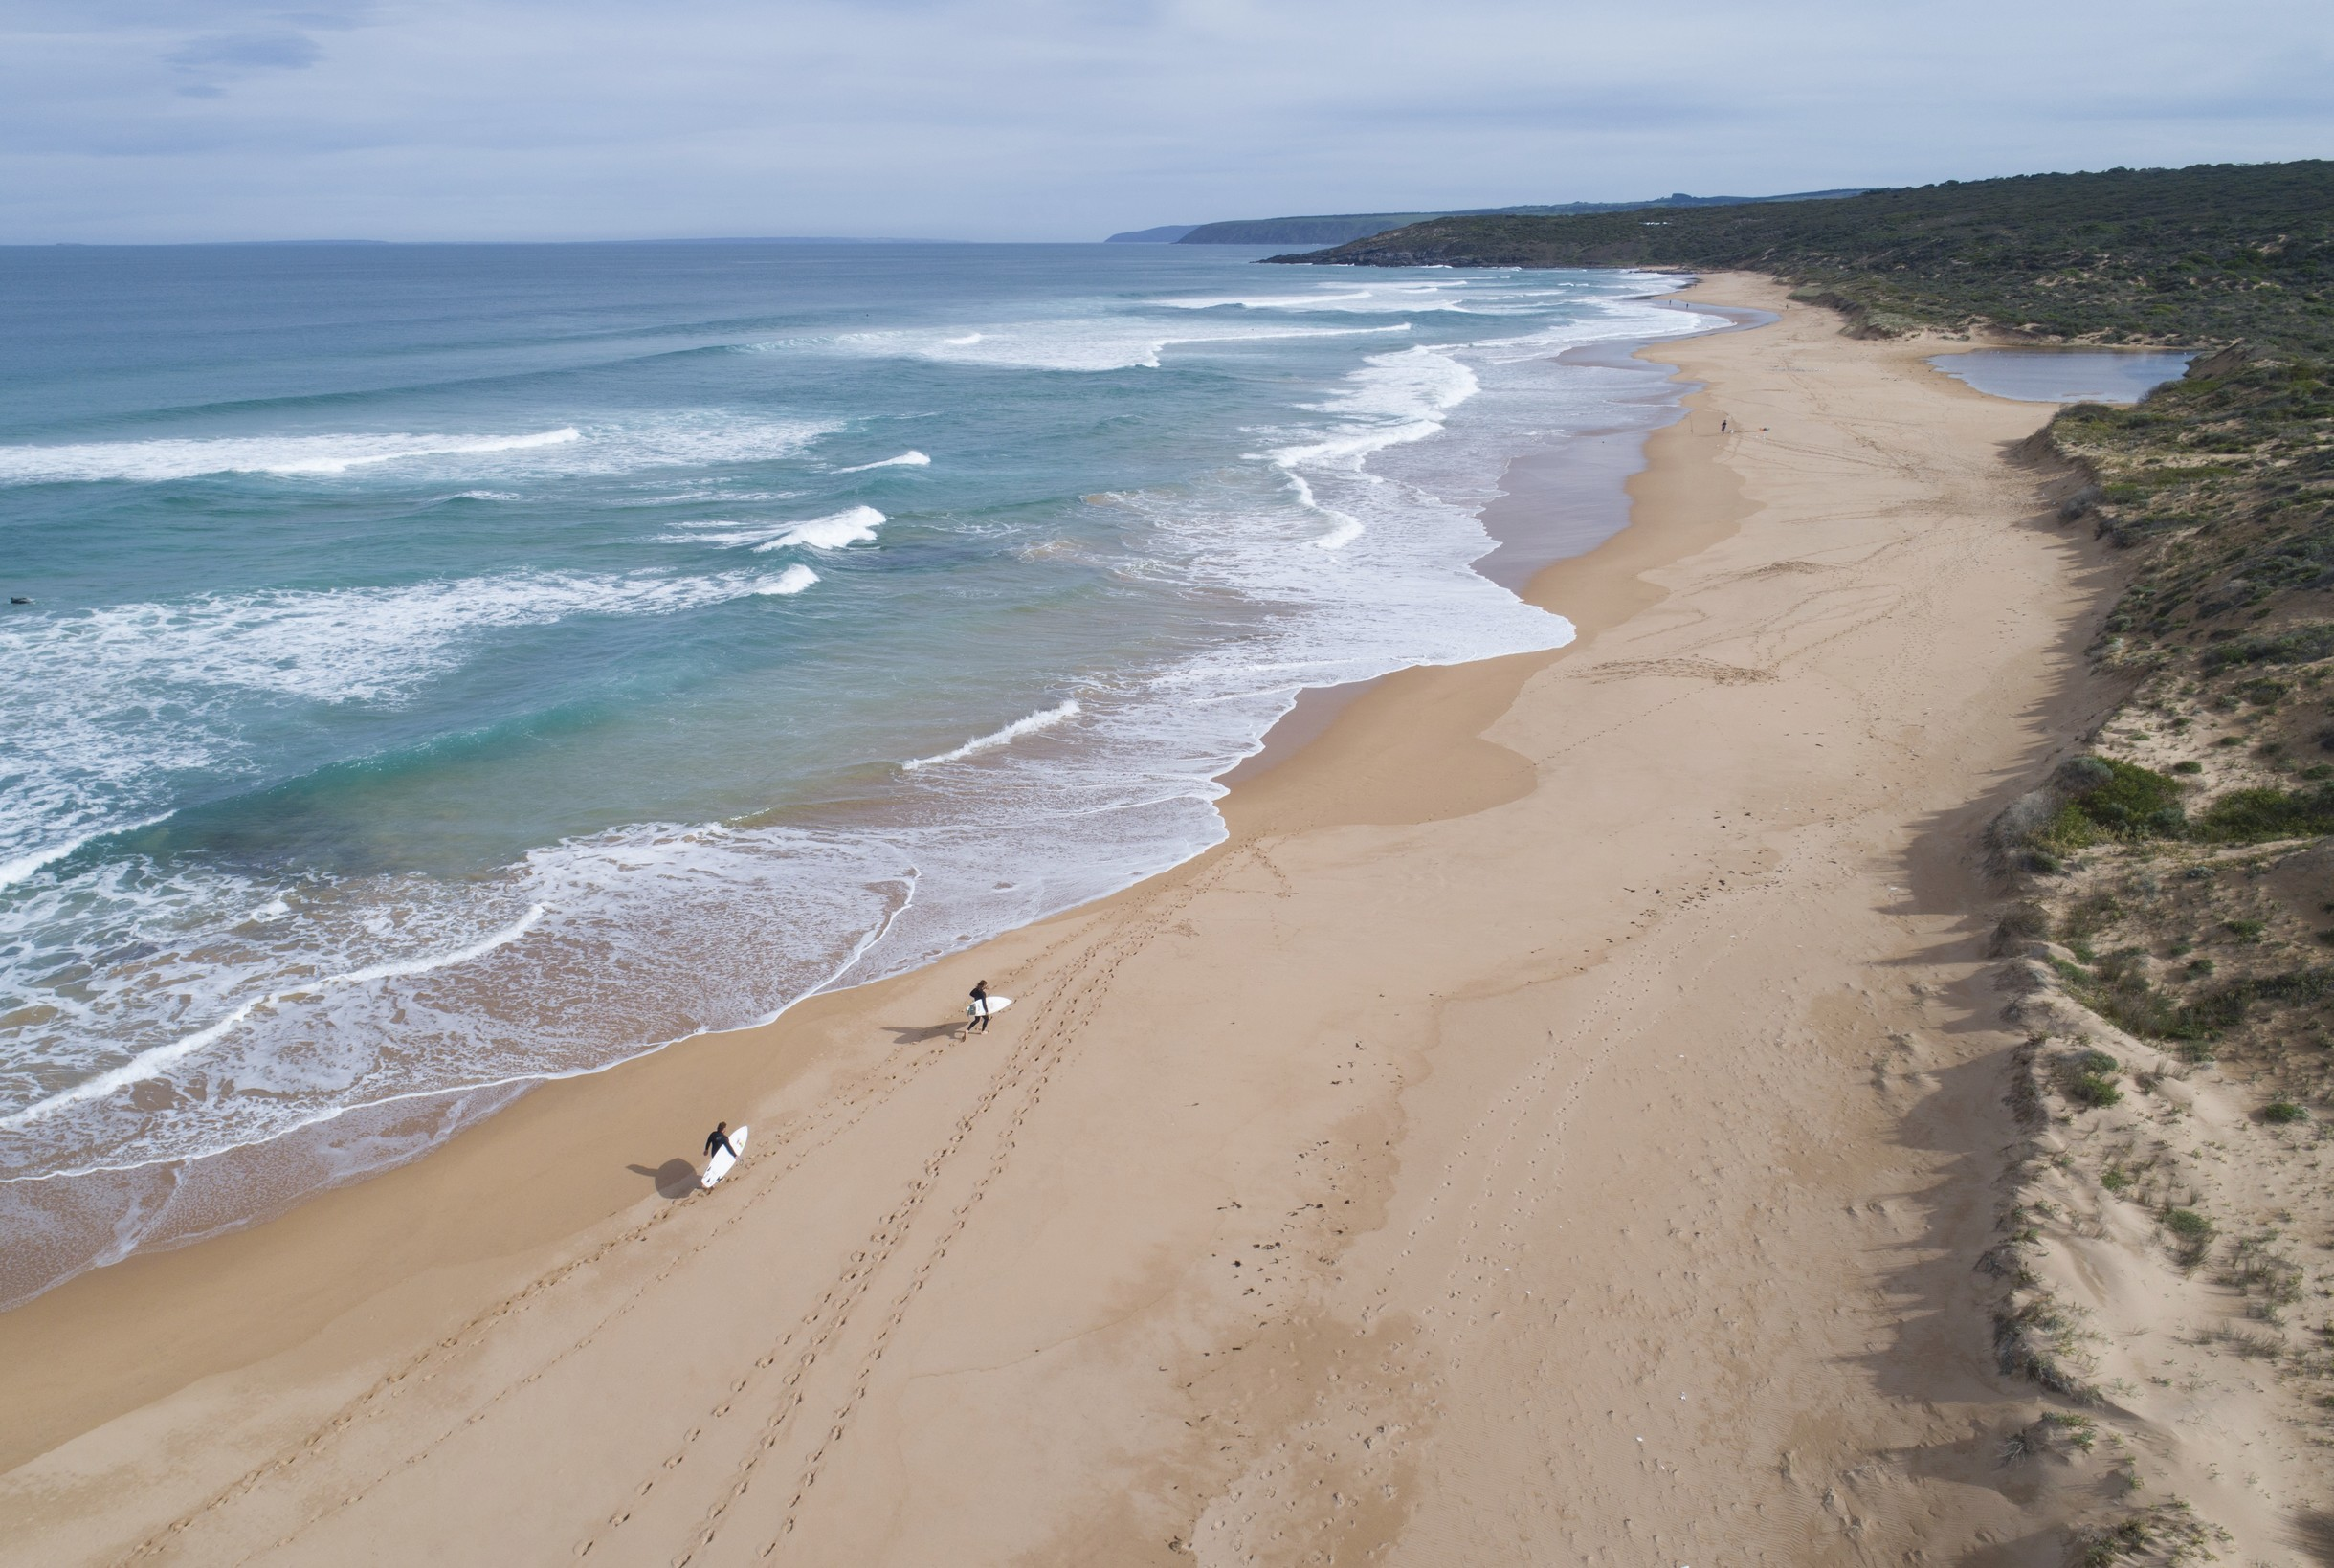 waitpinga-beach-surfers-credit-jesse-ehlers